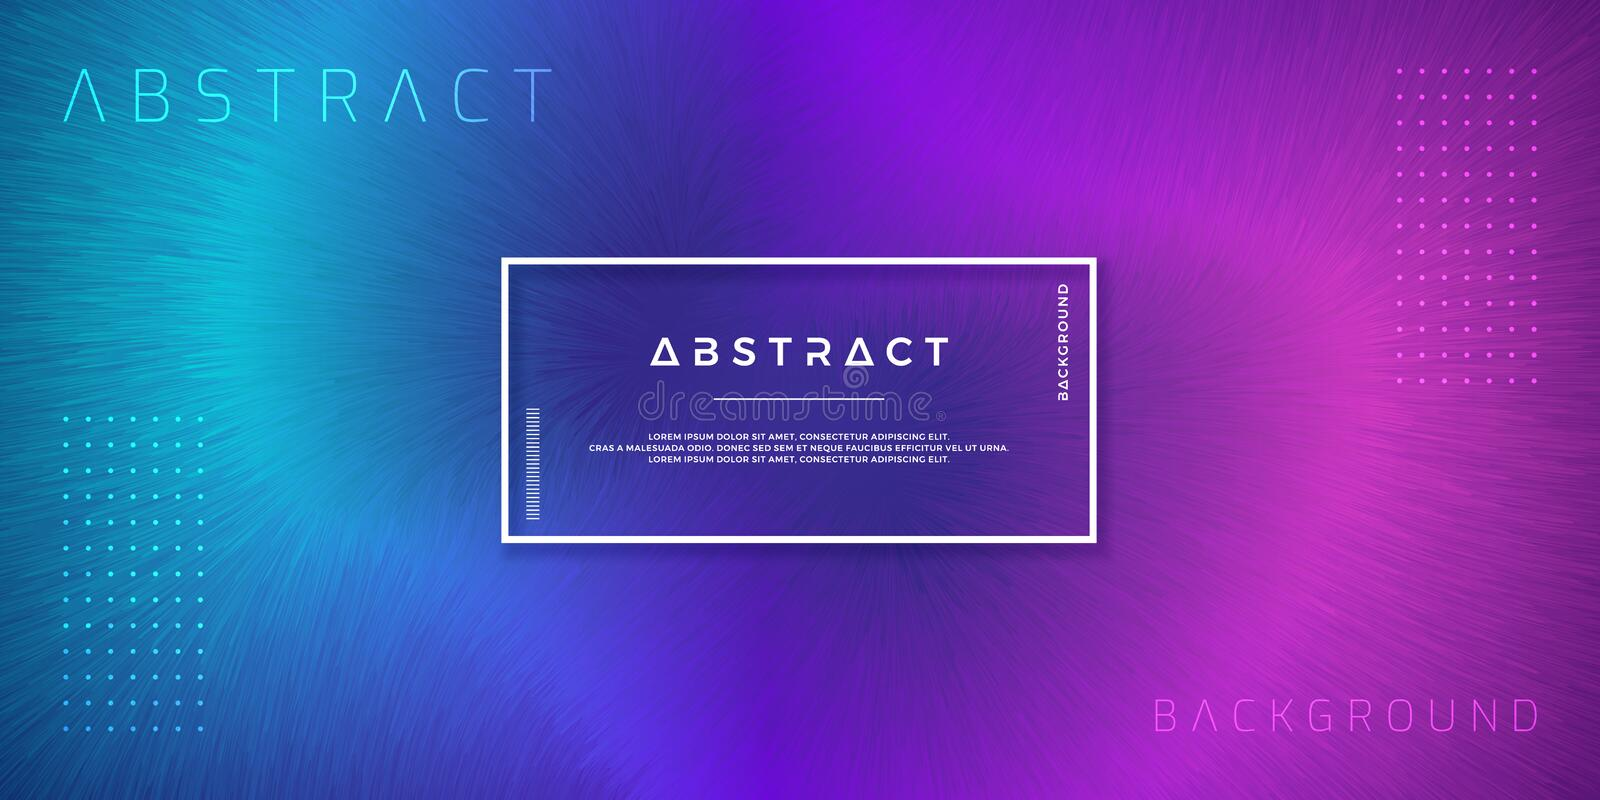 Abstract, dynamic, modern backgrounds for your design elements and others, with purple and light blue gradient color vector illustration